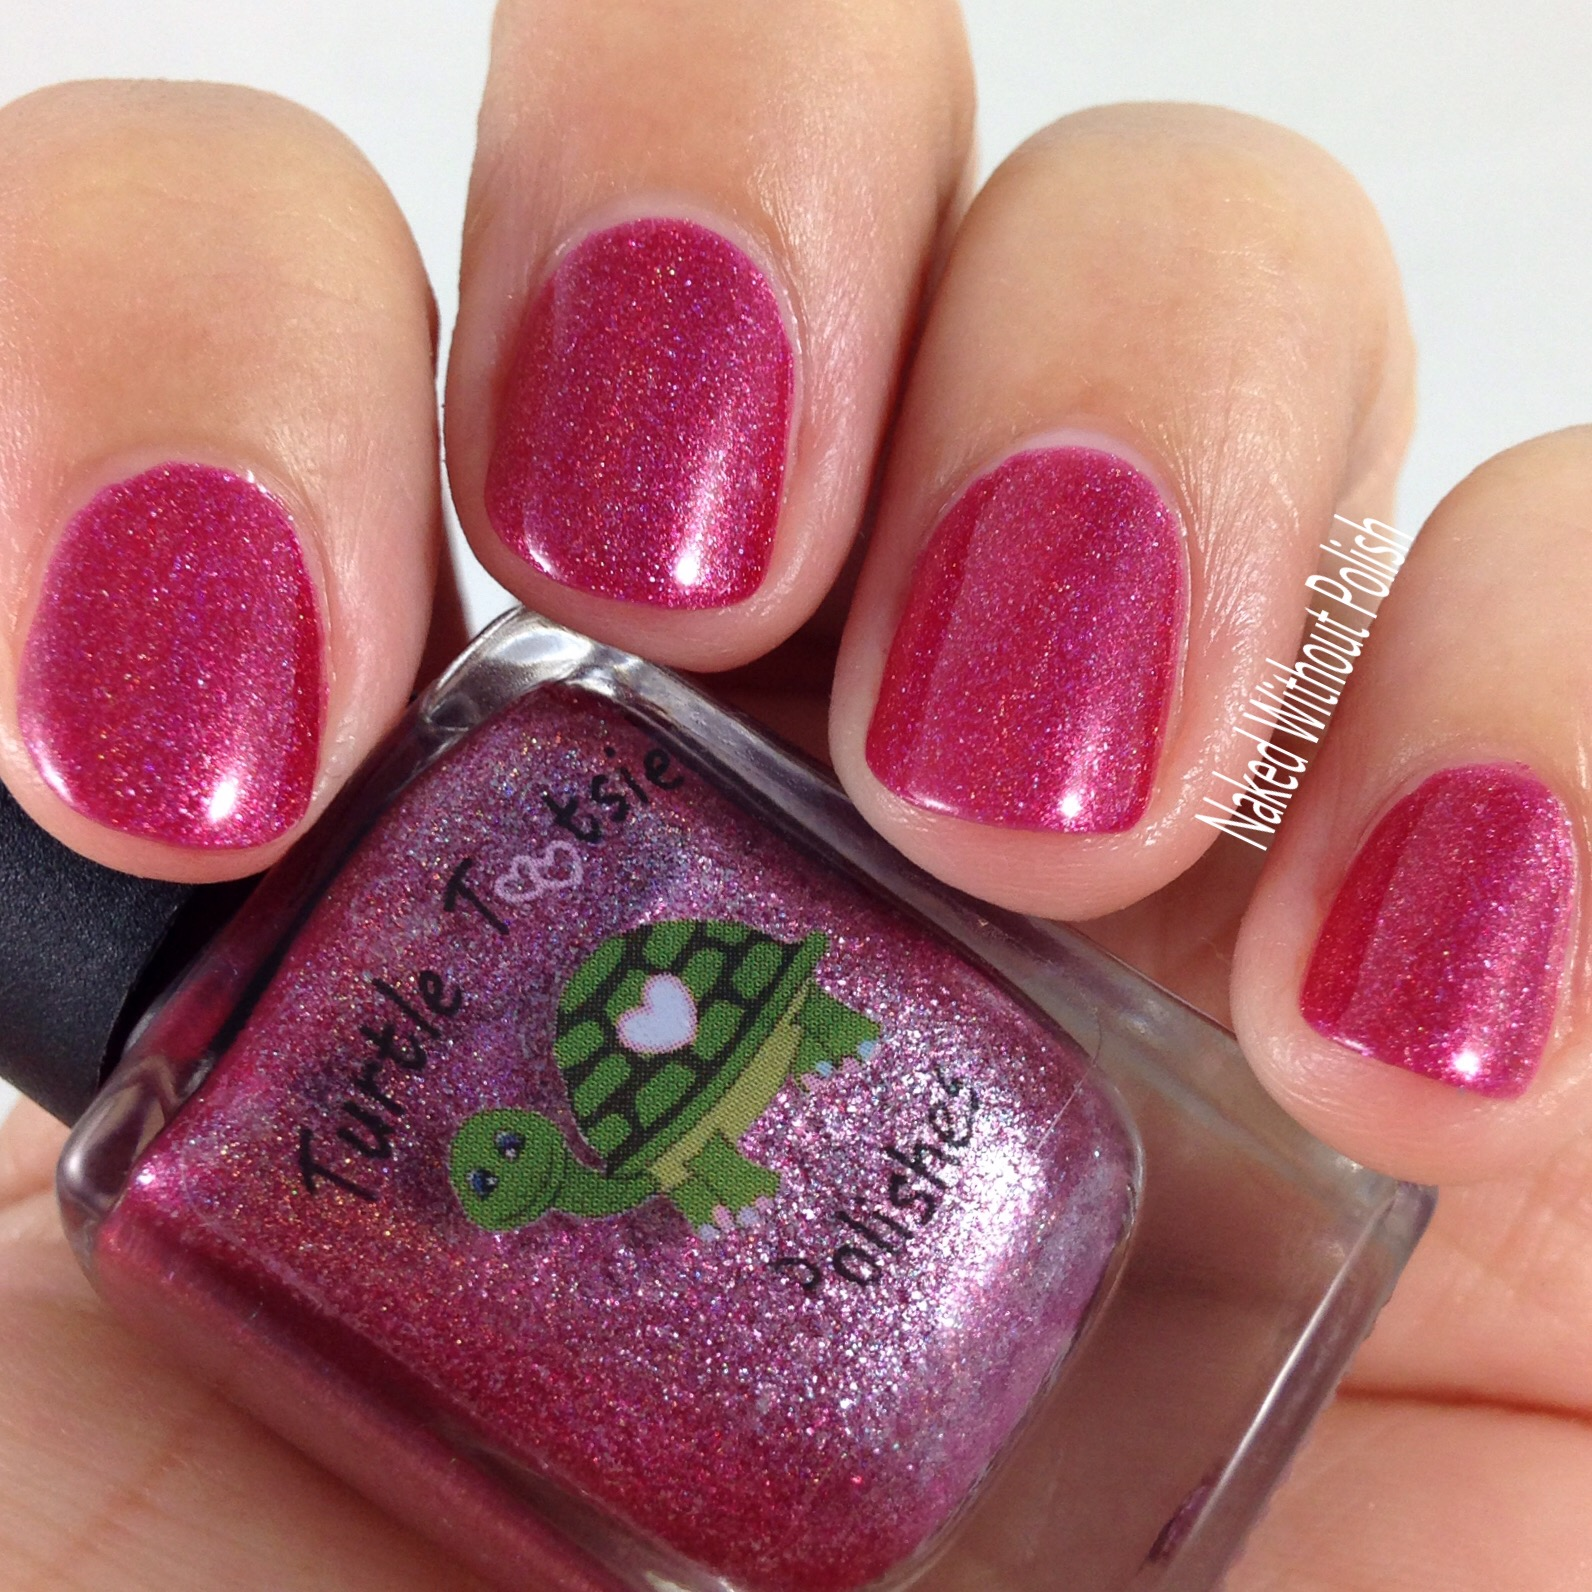 Turtle-Tootsie-Polishes-Tell-Me-About-It-Stud-6